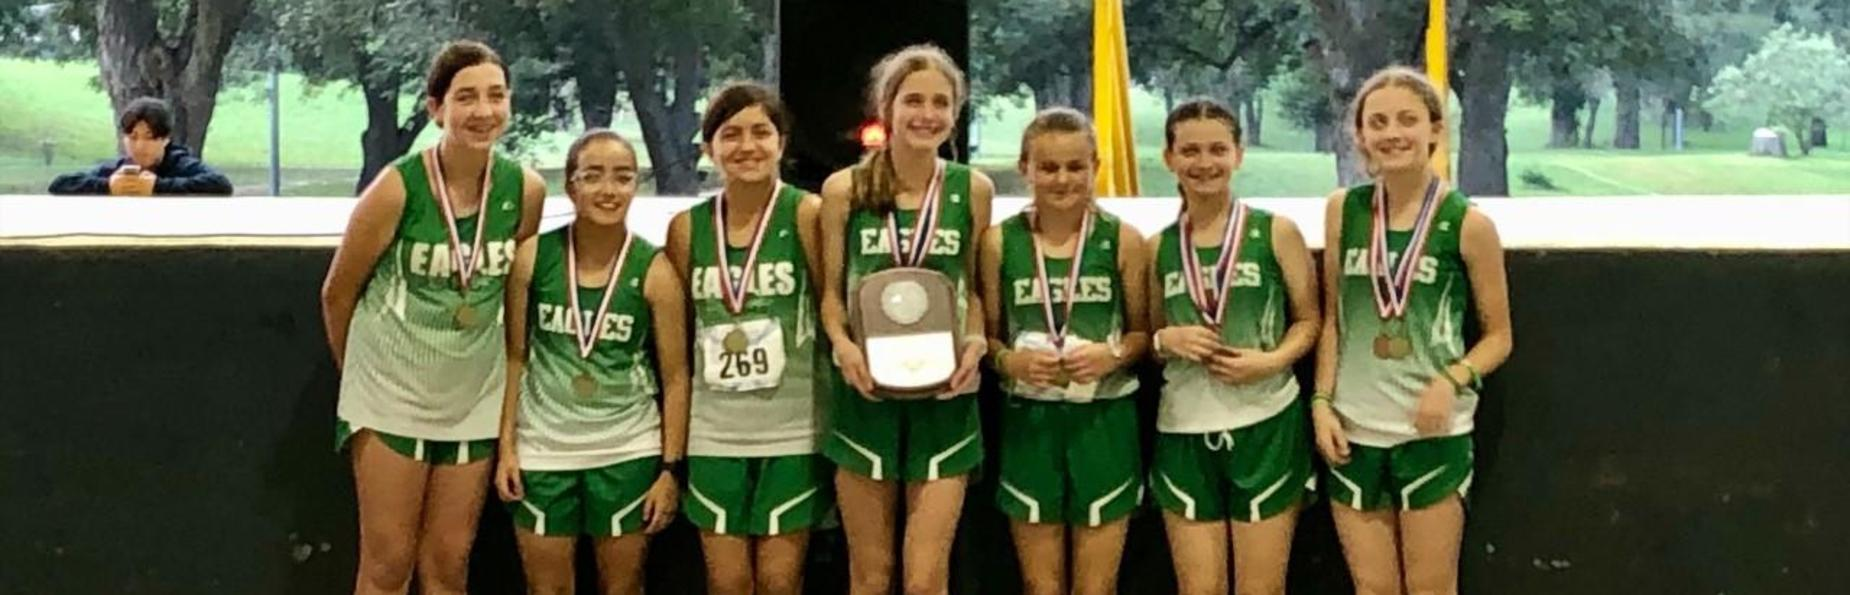 7th grade Girls' Cross Country District Champions